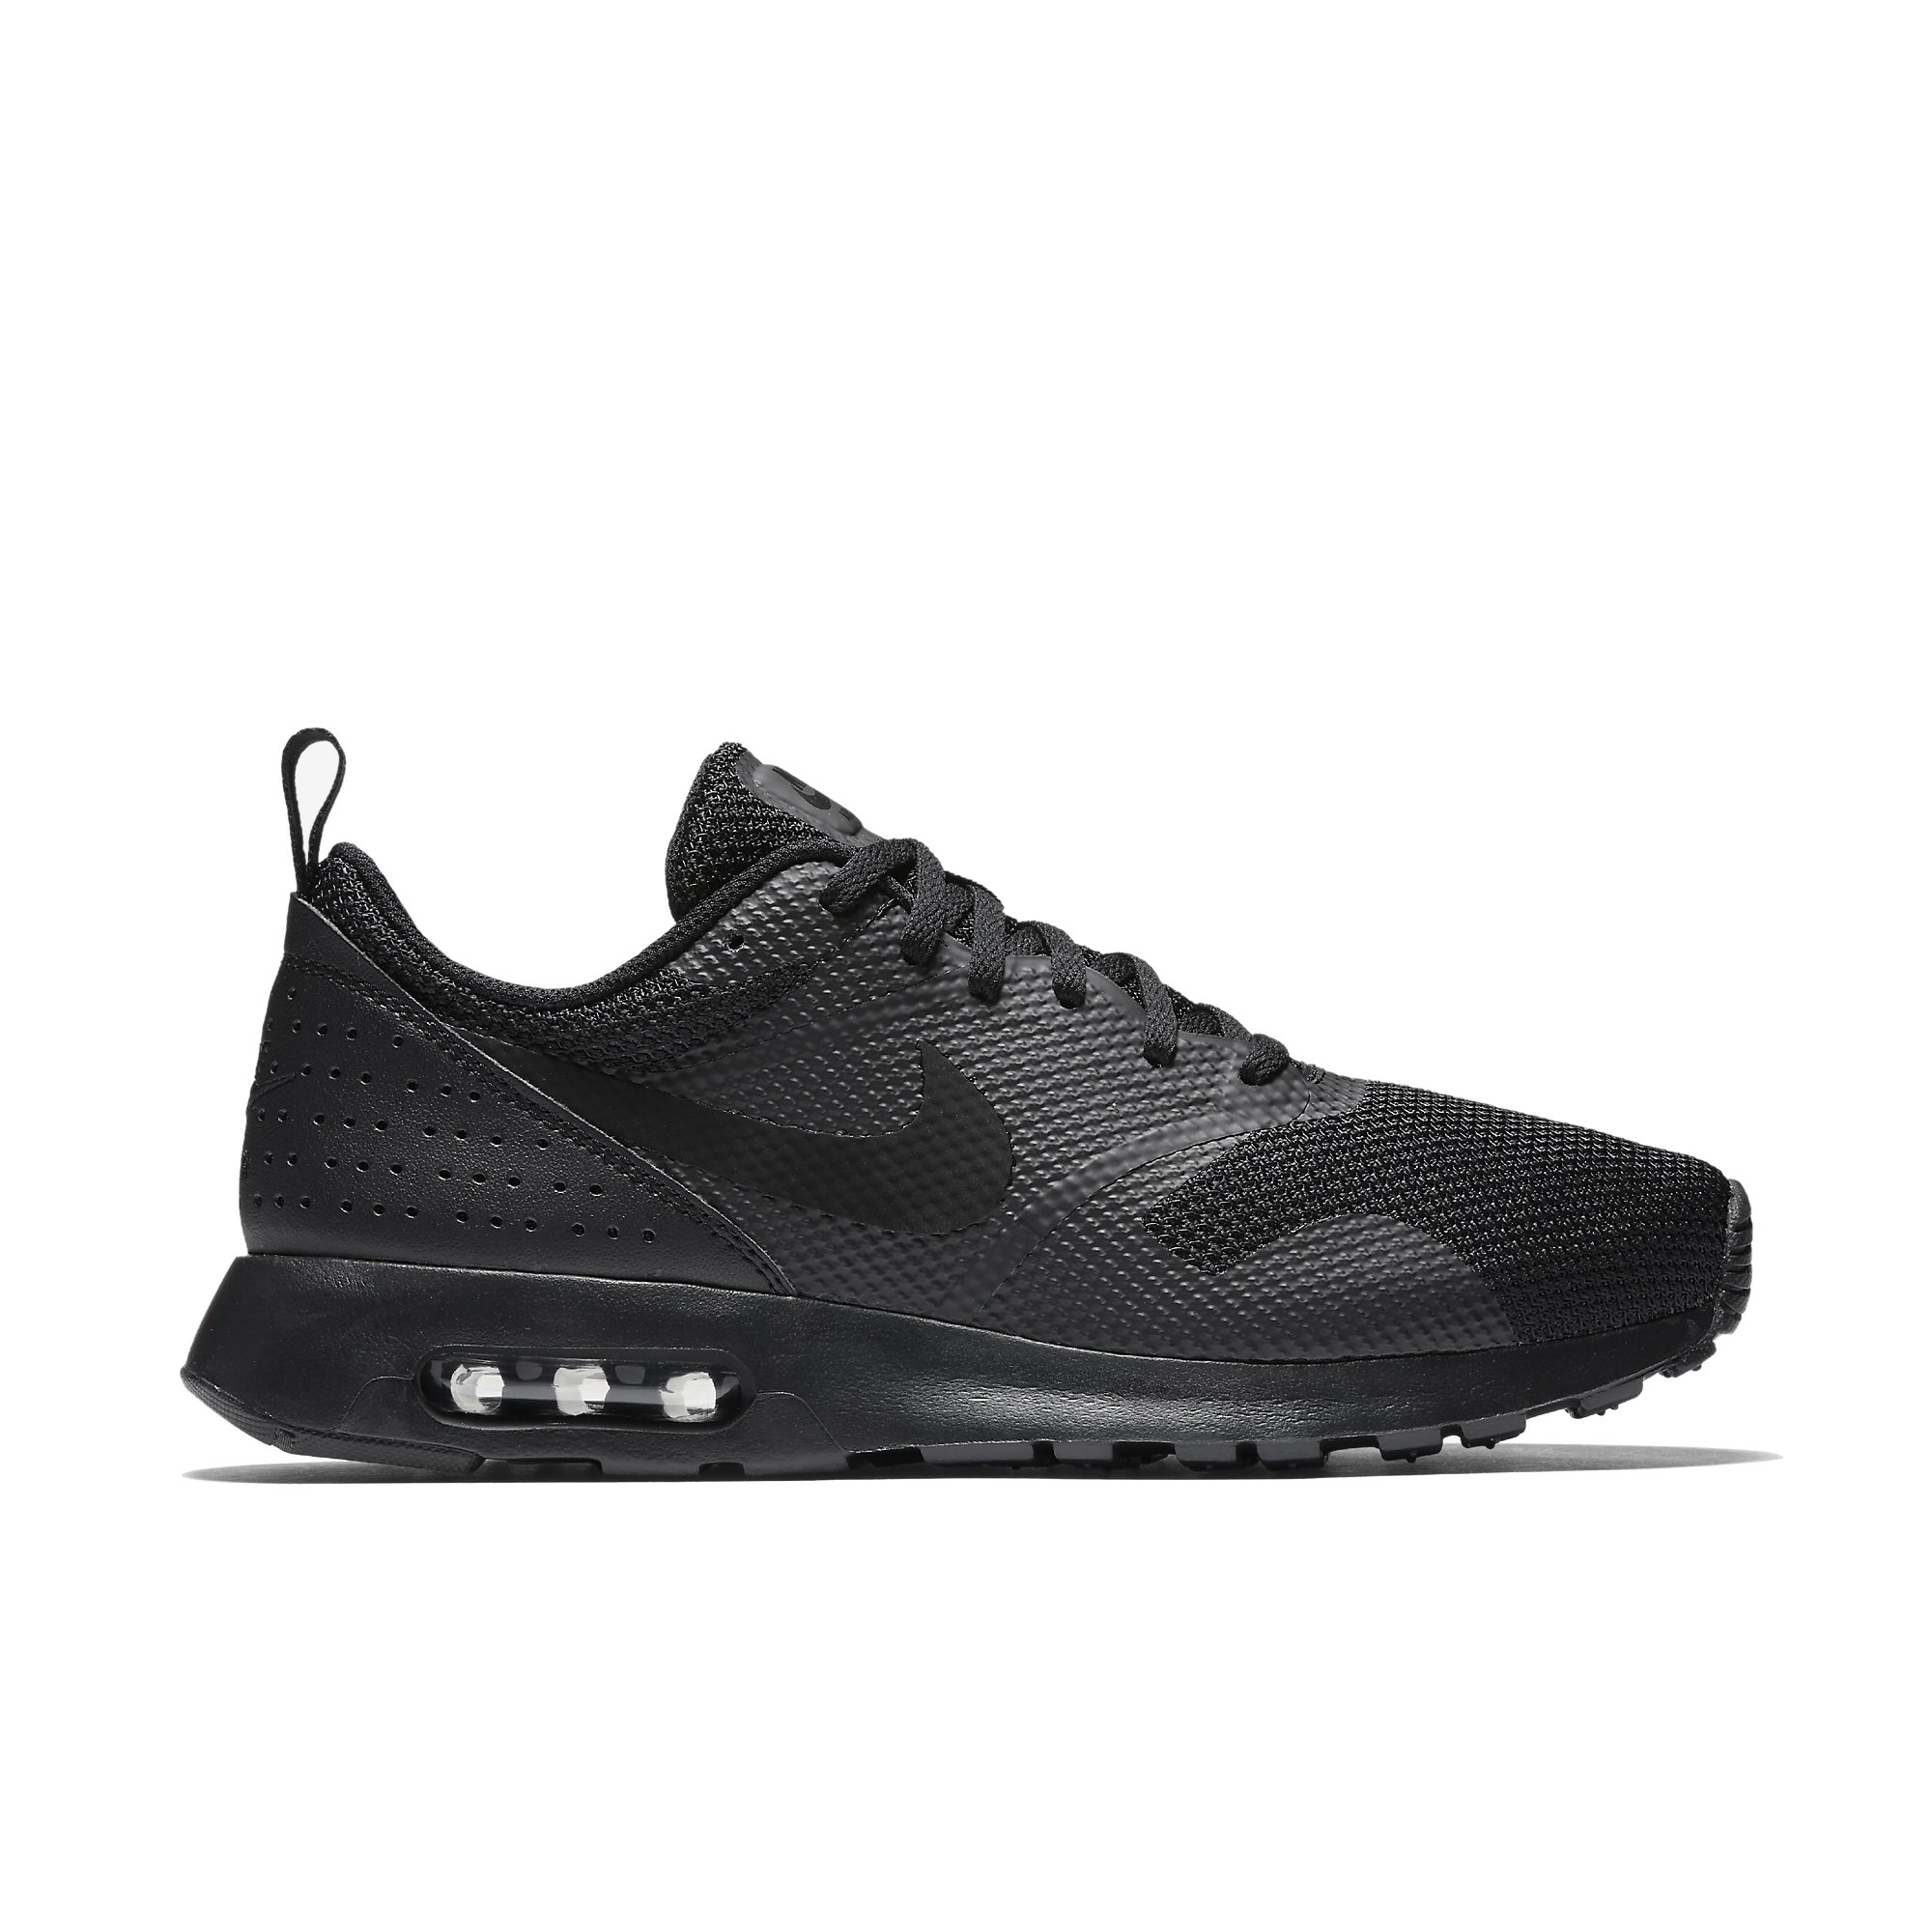 12d05d21d Galleon - Nike Men Air Max Tavas Sneakers - Triple Black (11)